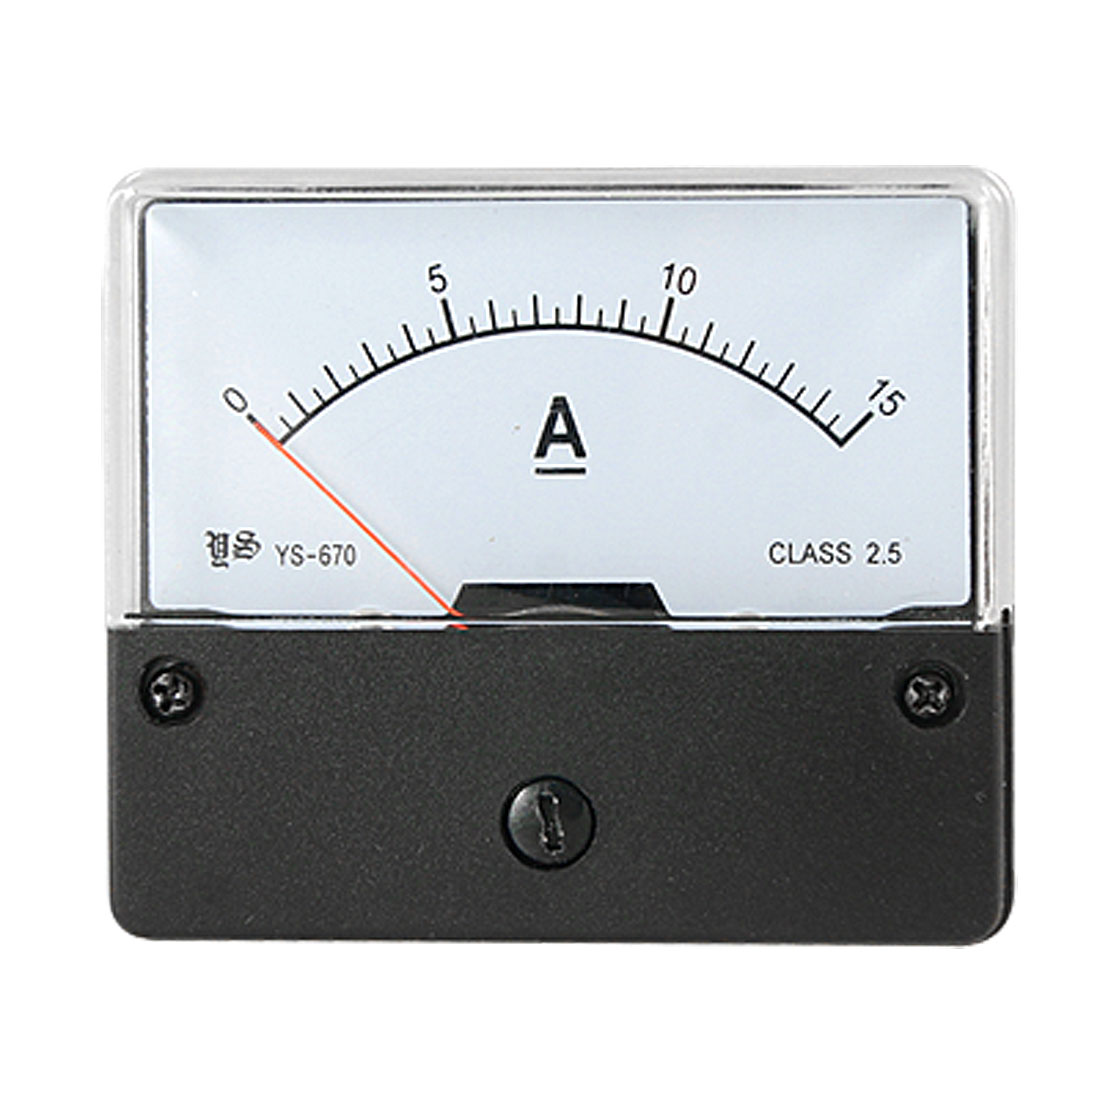 DC 0-15A Current Range Panel Mount Ampere Meter Gauge w Fitting Part